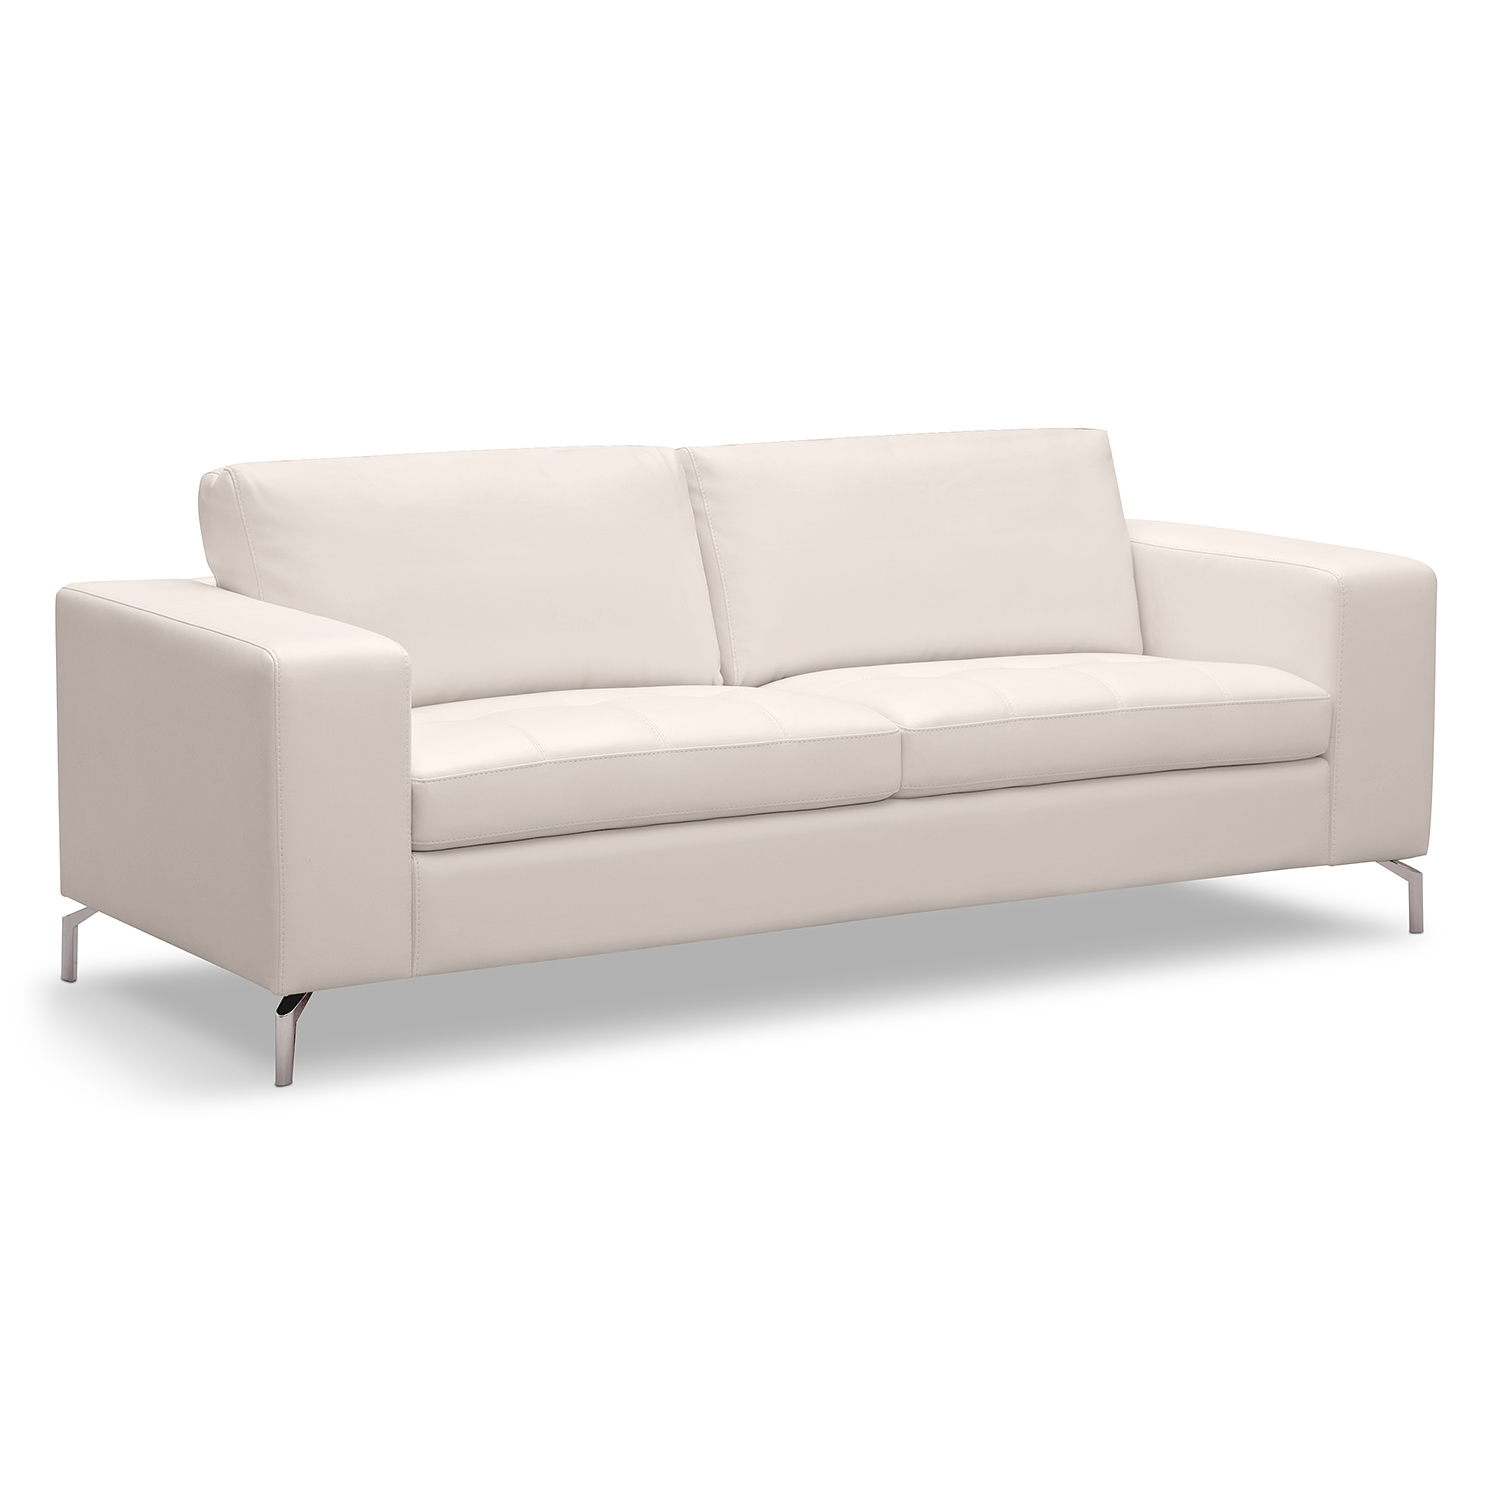 Casino Leather Sofa American Signature Furniture Main Living Regarding White Sofa Chairs (Image 2 of 15)